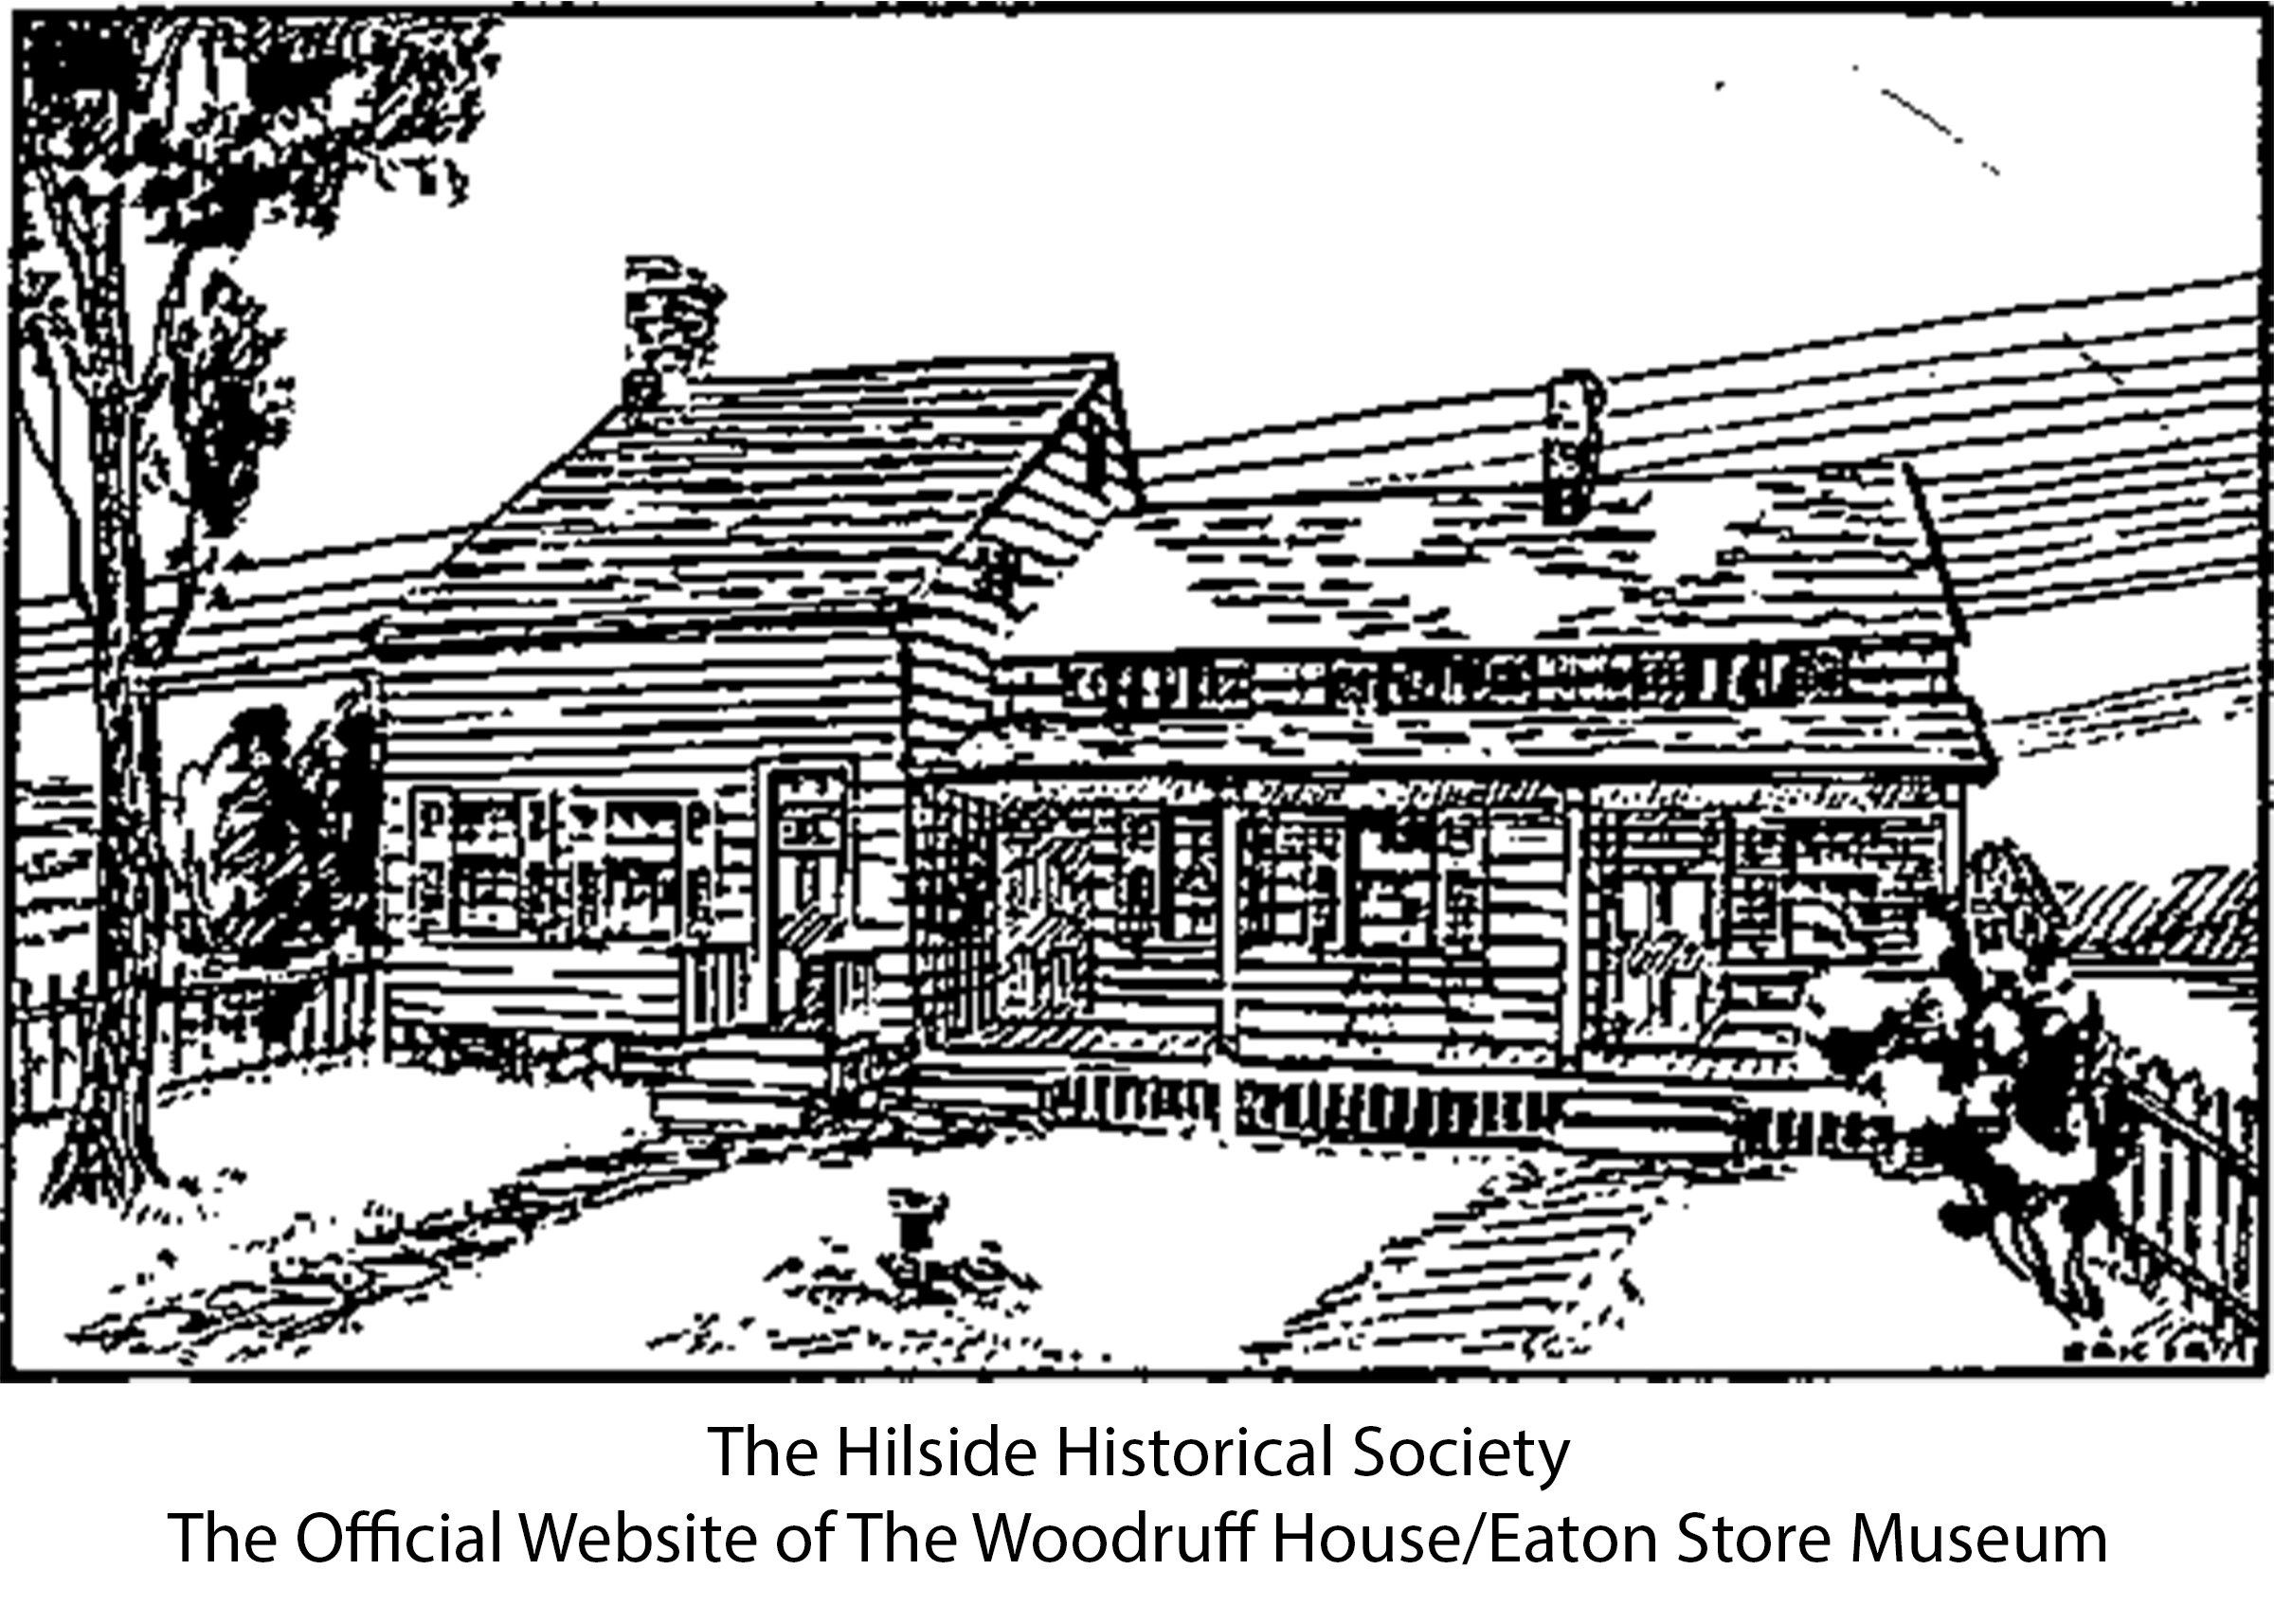 The Hillside Historical Society